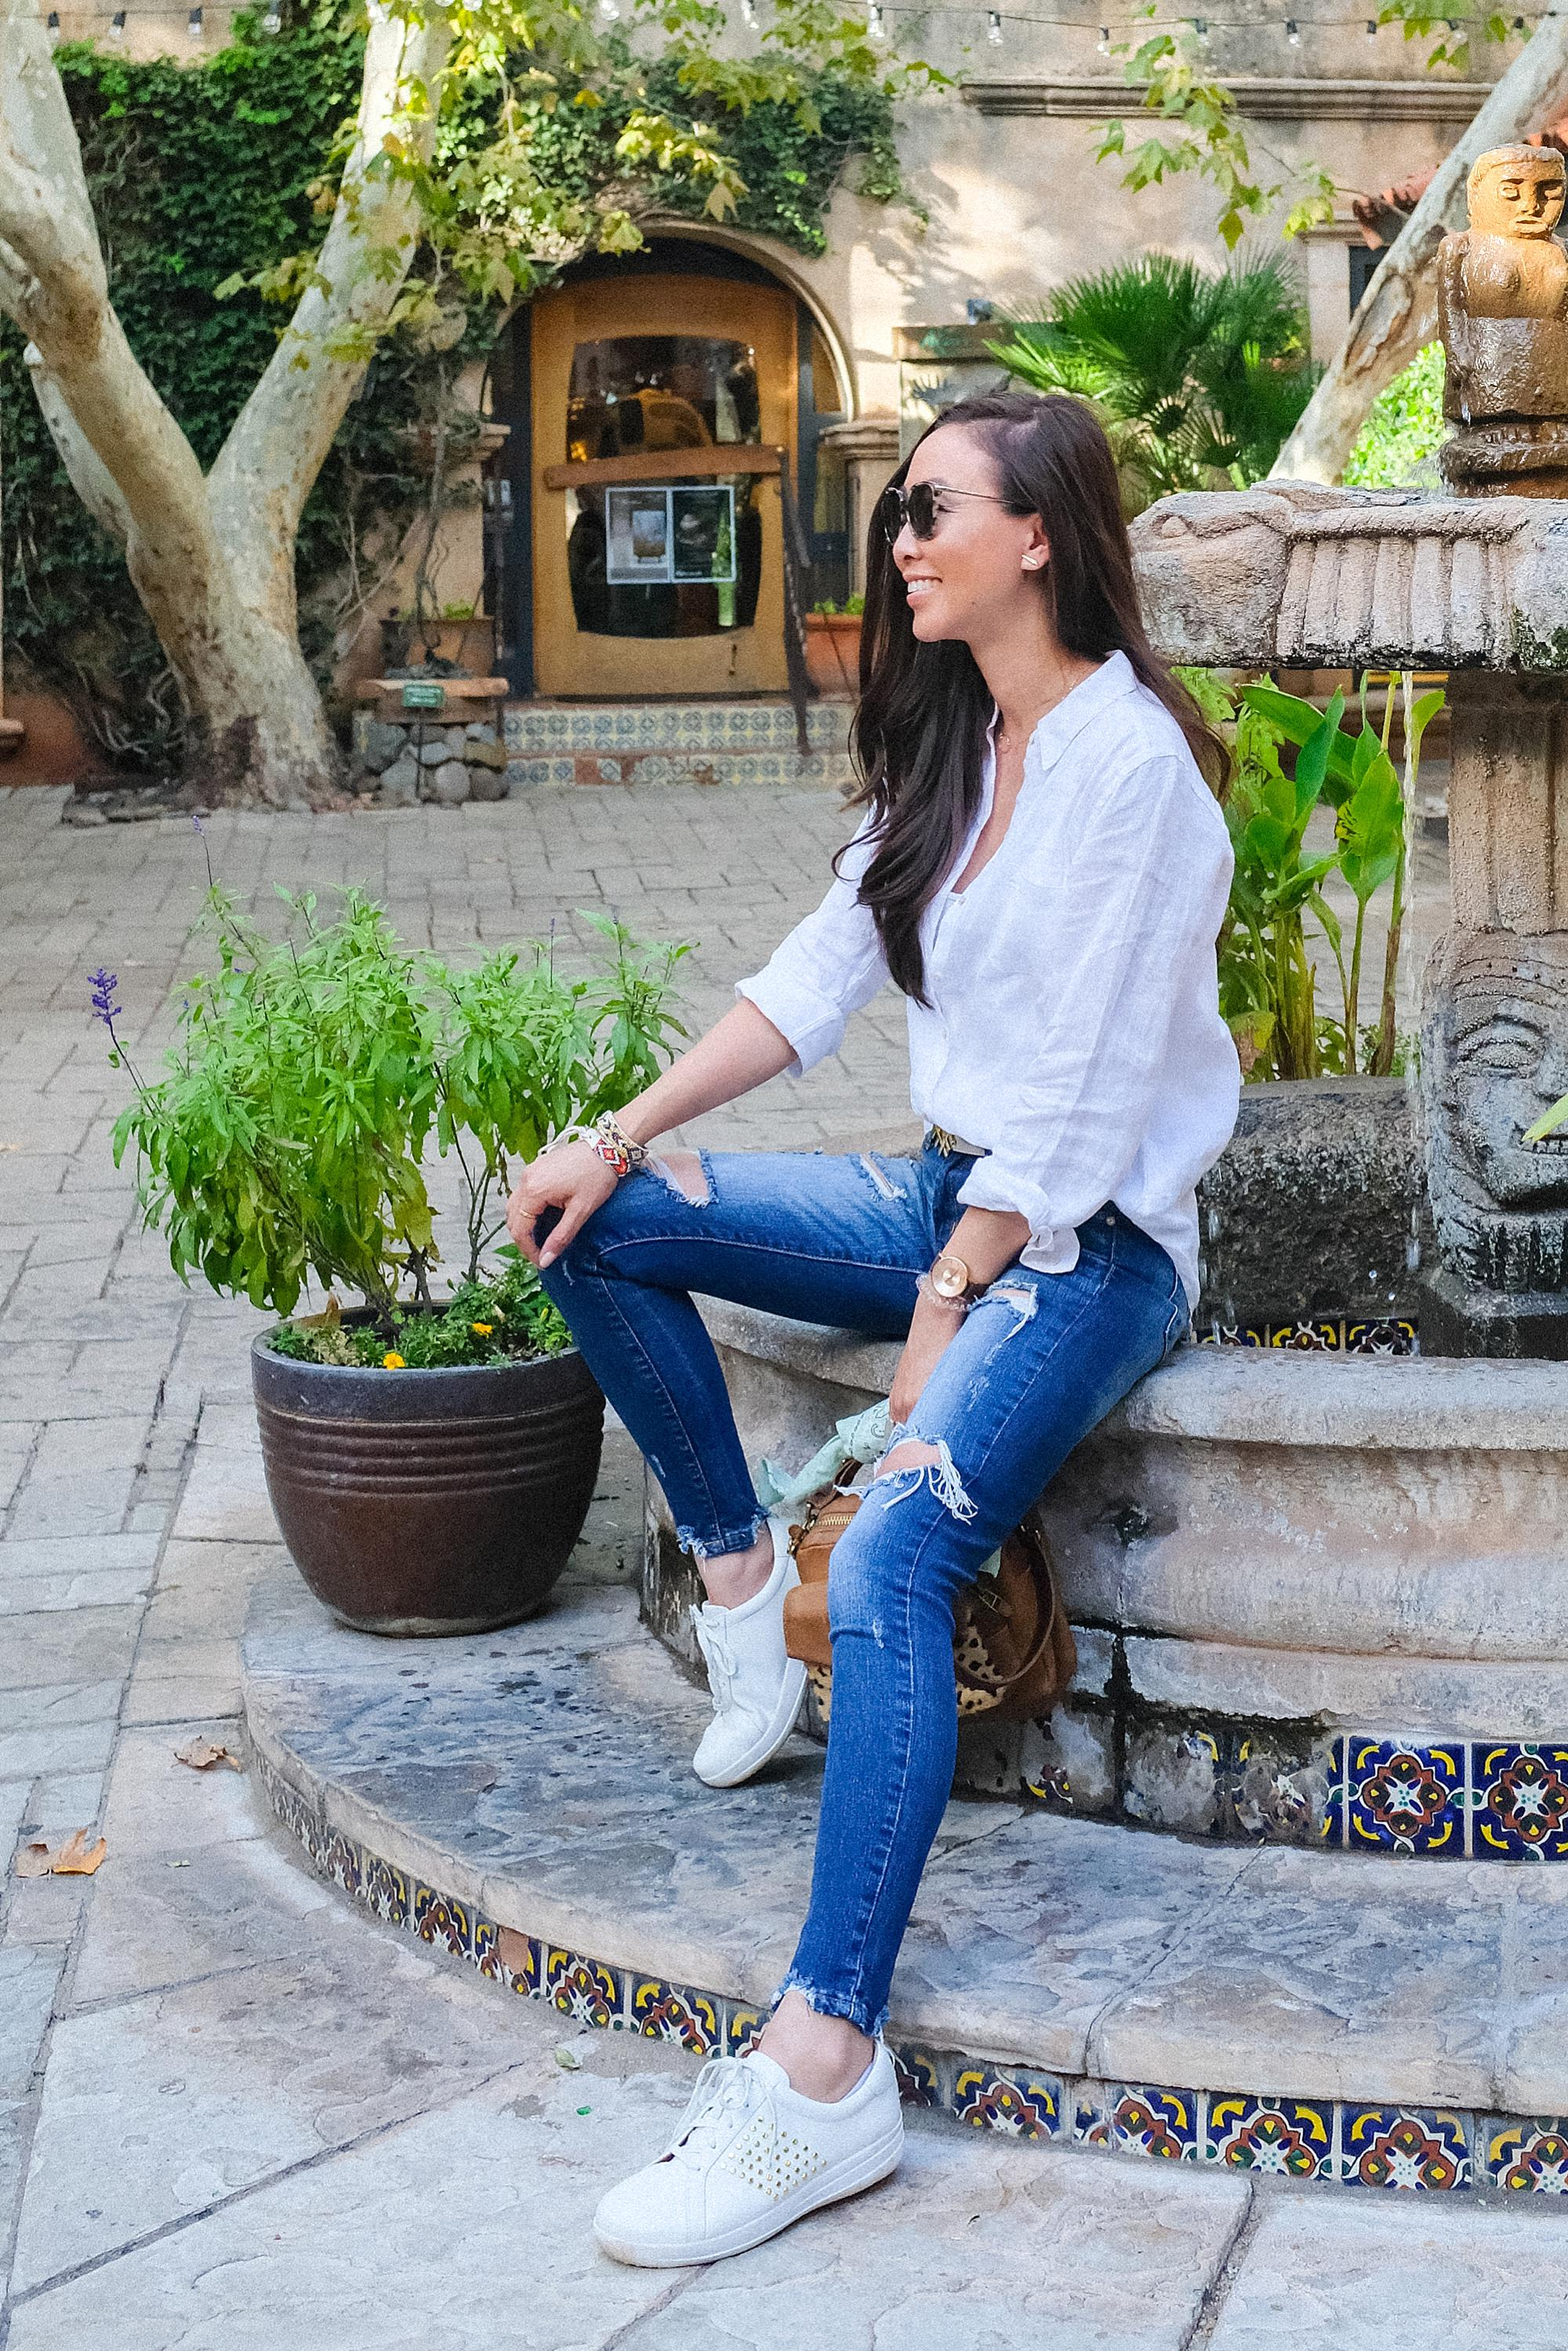 Tlaquepaque Arts & Crafts Village shopping in Sedona, lifestyle blogger Diana Elizabeth wearing white sneakers by fountain